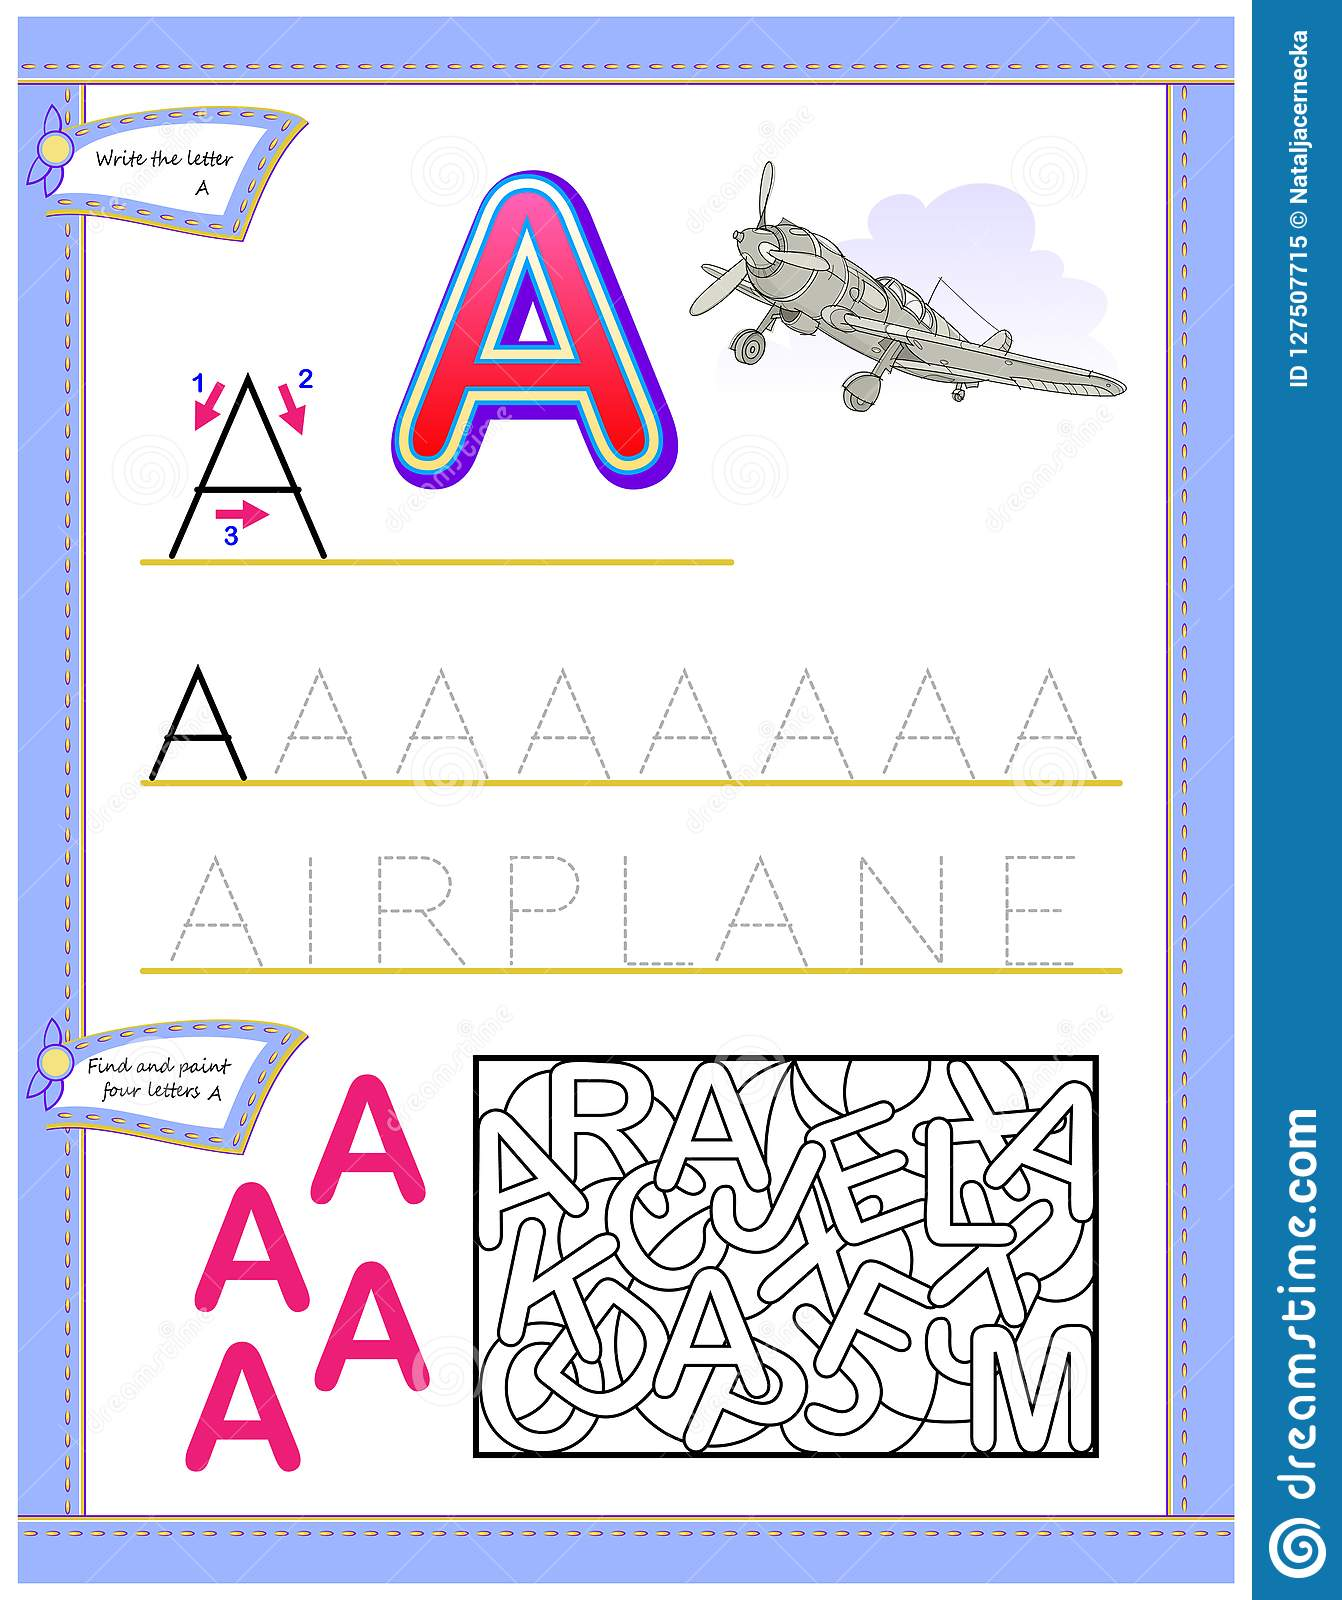 Worksheet For Kids With Letter A For Study English